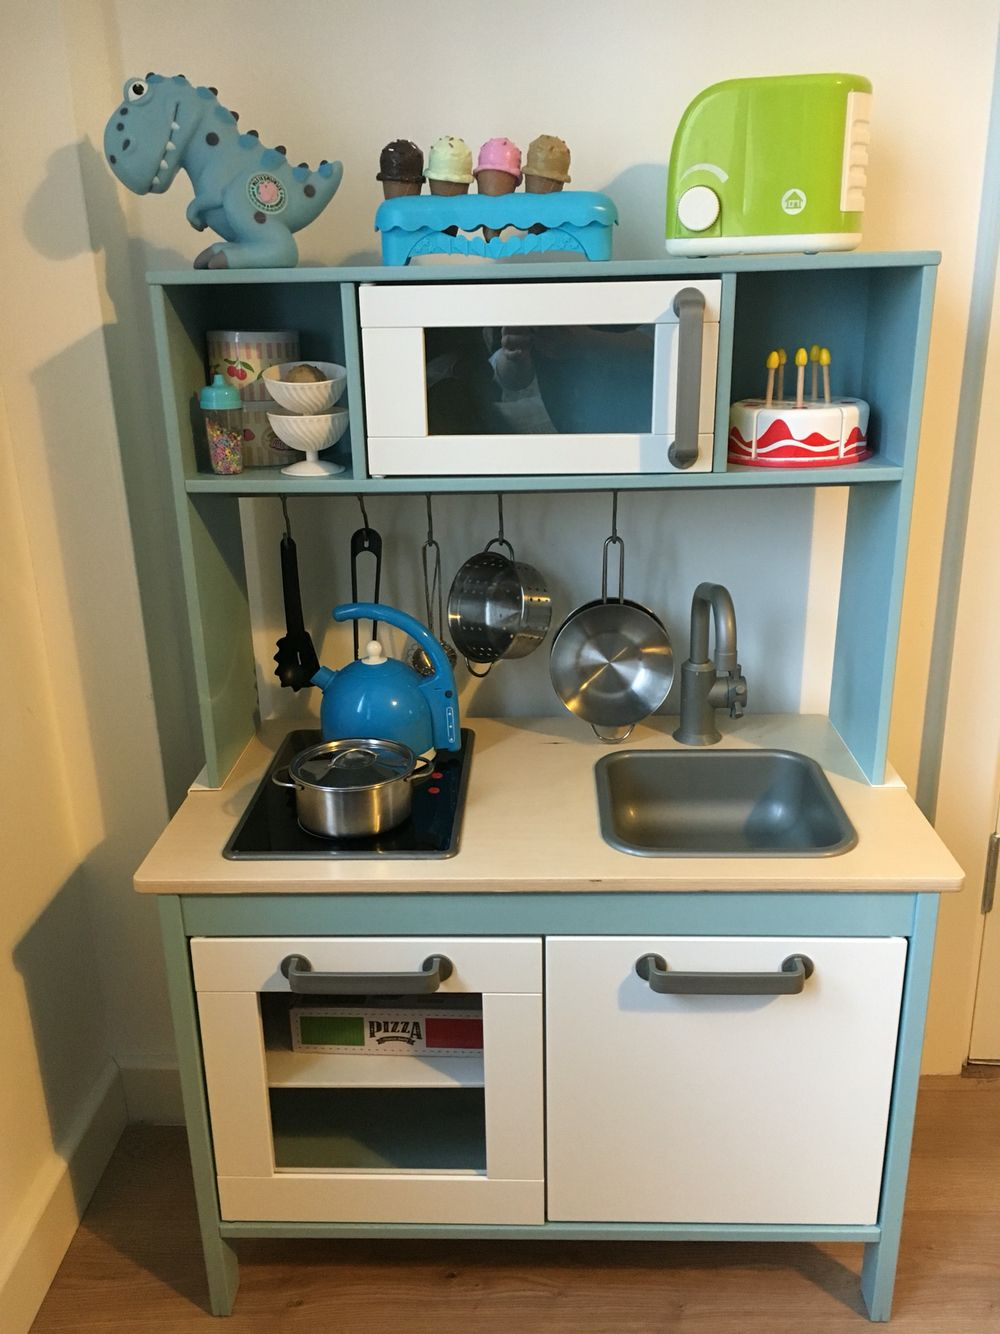 ikea duktig kitchen hack for a little boy zora pinterest cocina ikea cocinas de juguete y. Black Bedroom Furniture Sets. Home Design Ideas